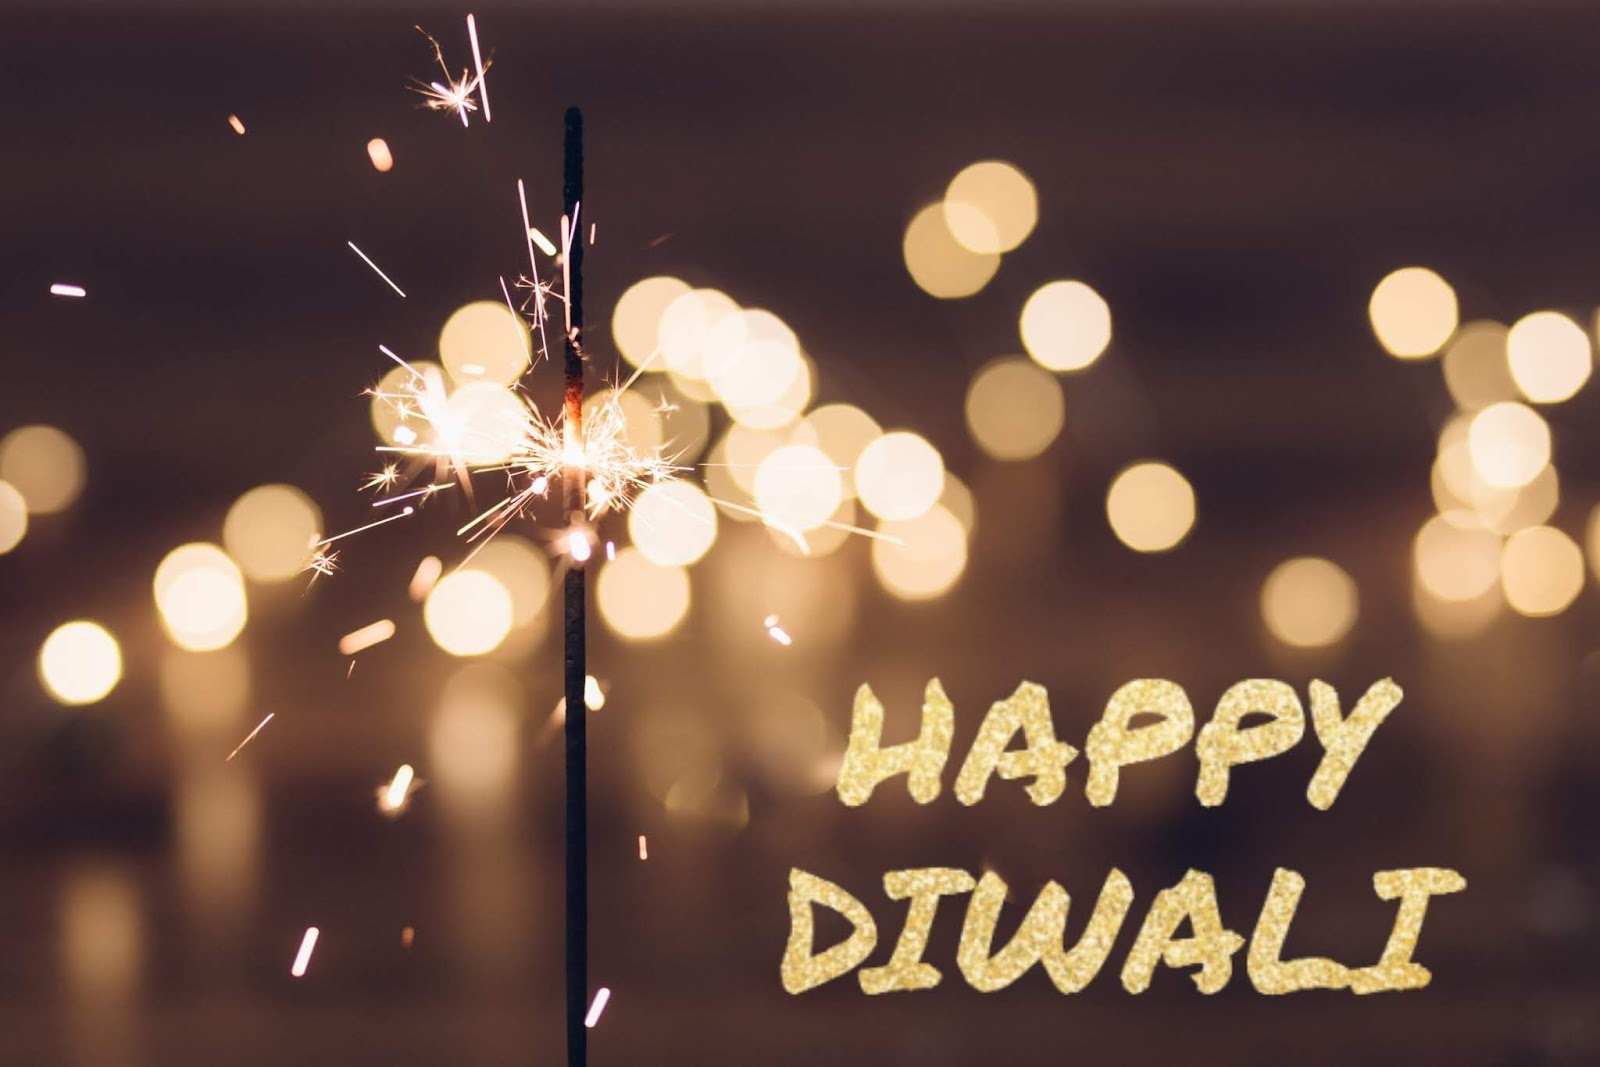 Pictures of Happy Diwali